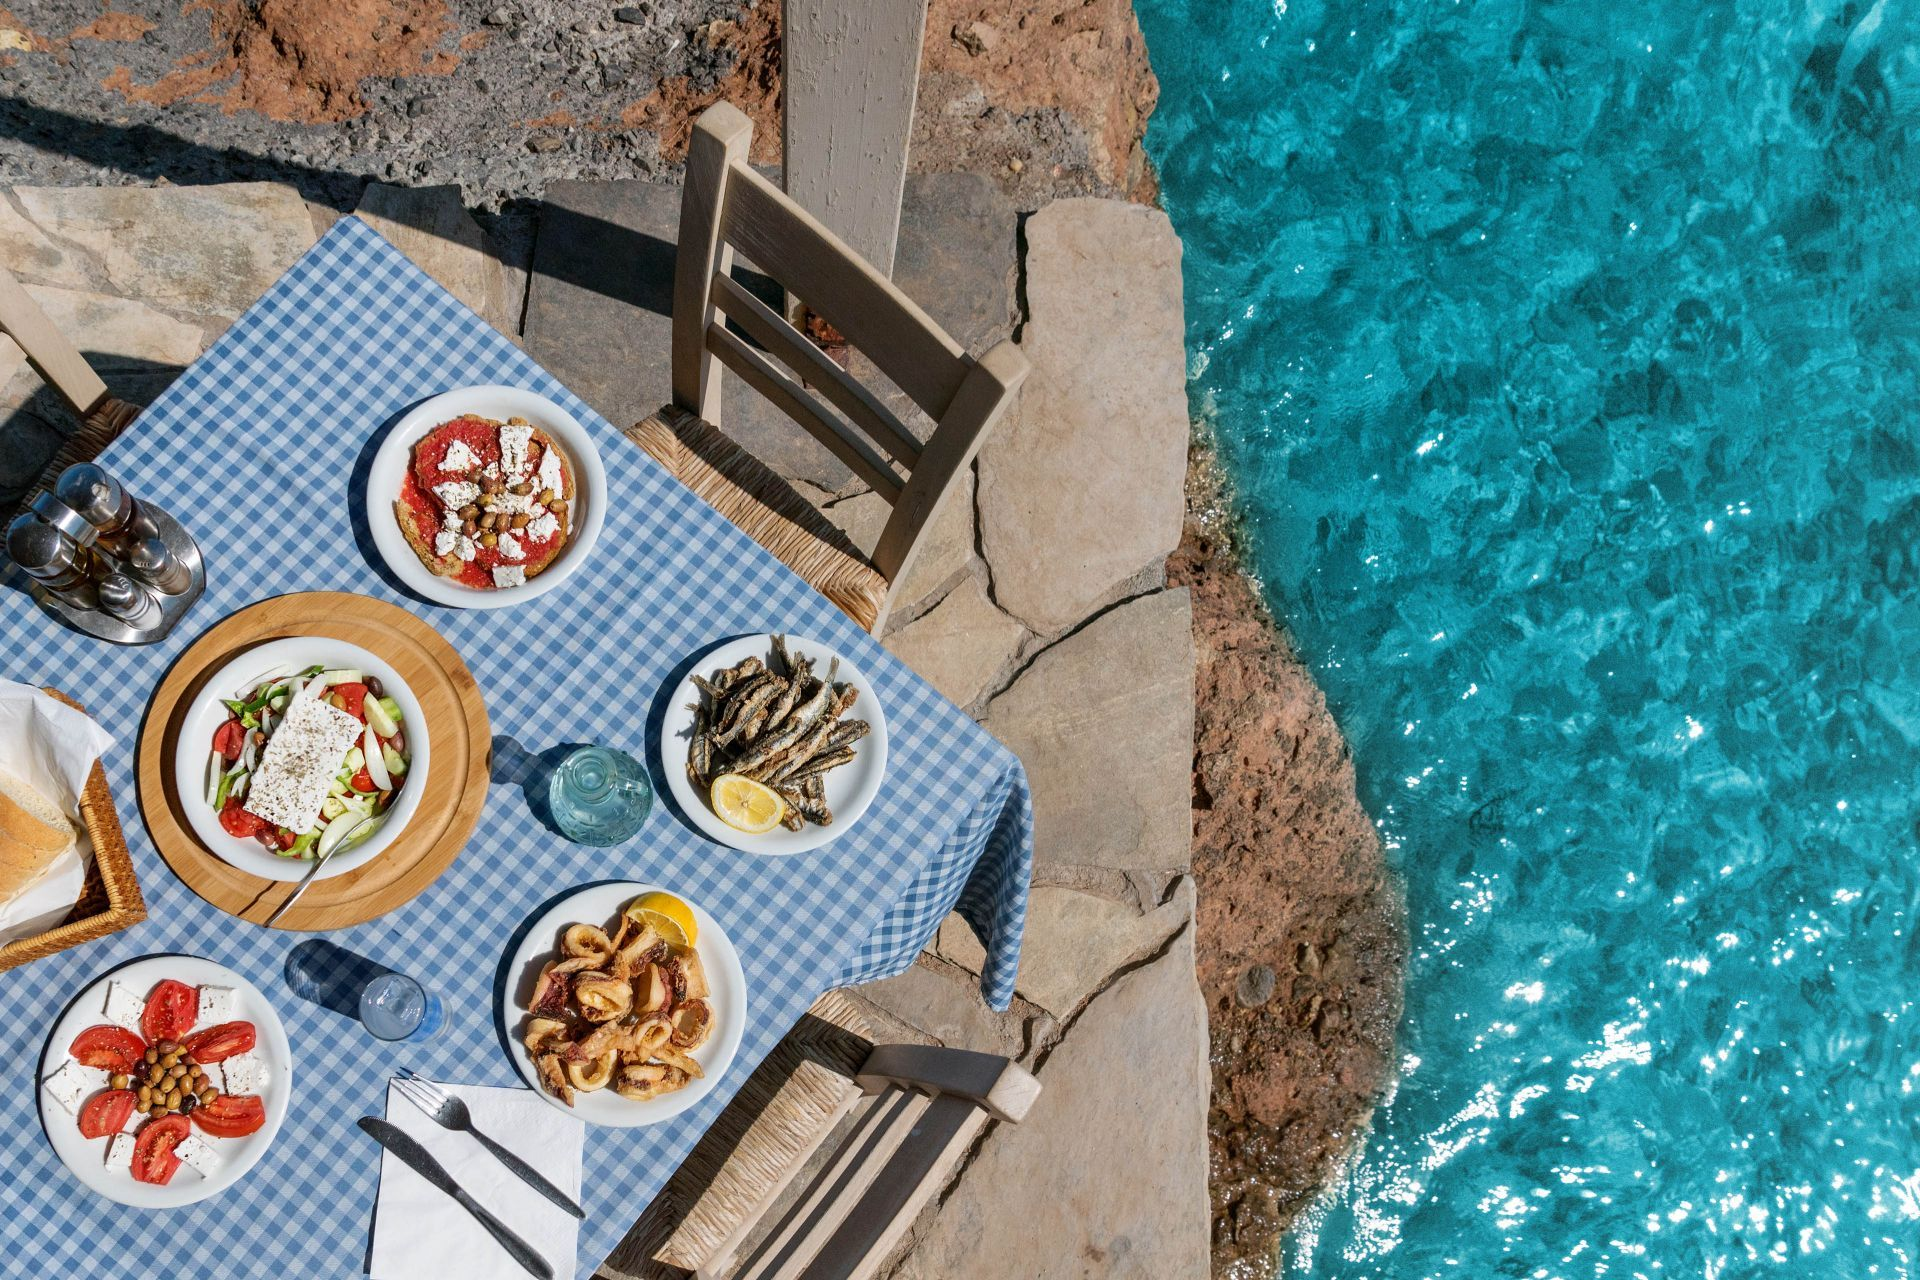 Restaurants in Greece and the islands